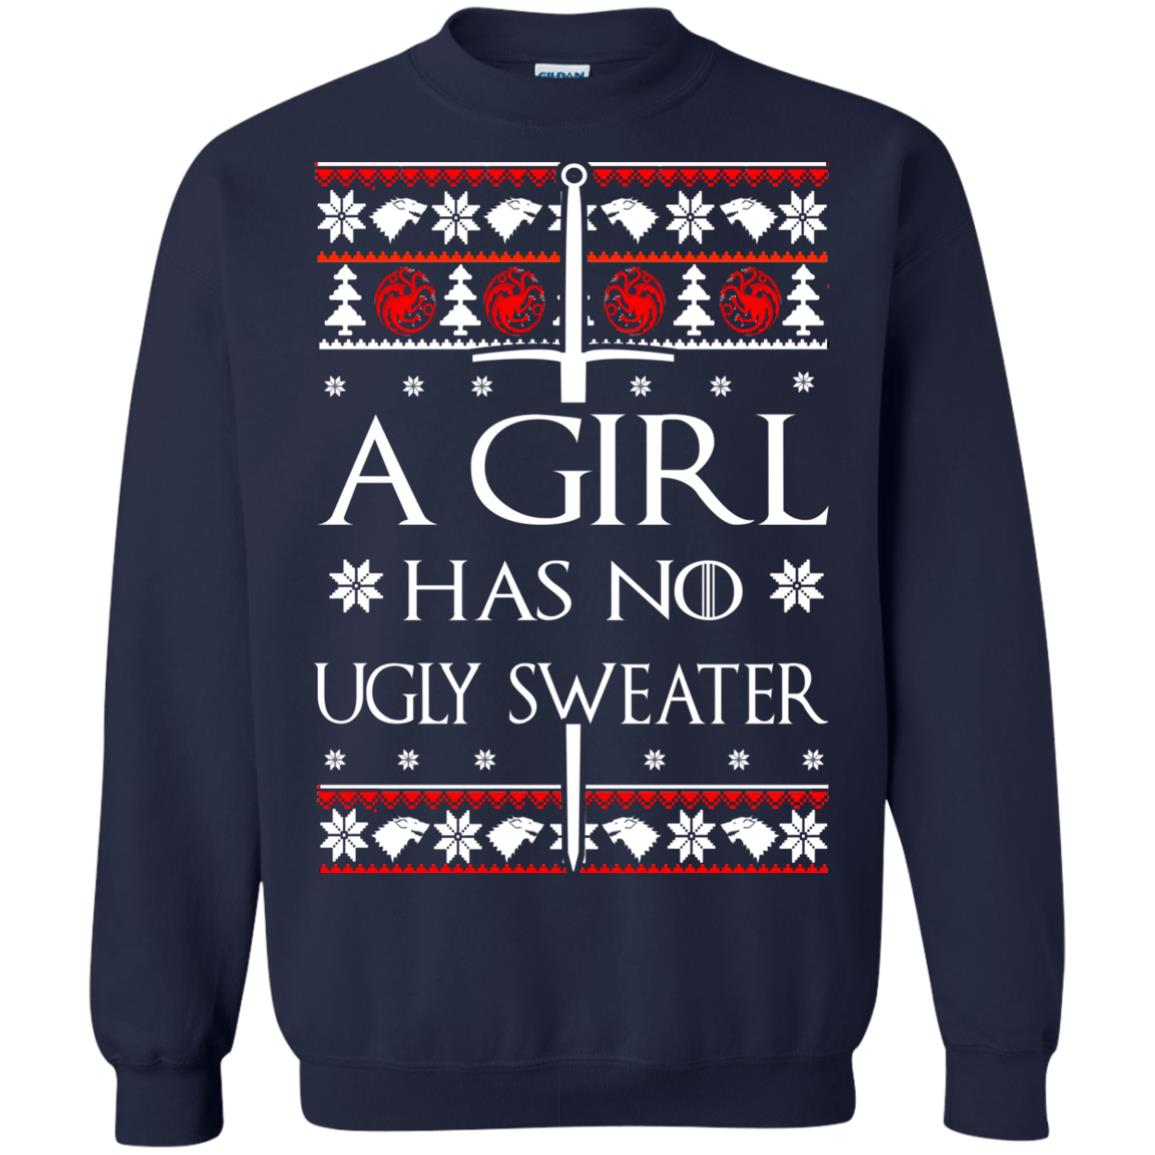 image 1506 - A Girl Has no Ugly Sweater, Shirt, Christmas Sweatshirt Game Of Thrones